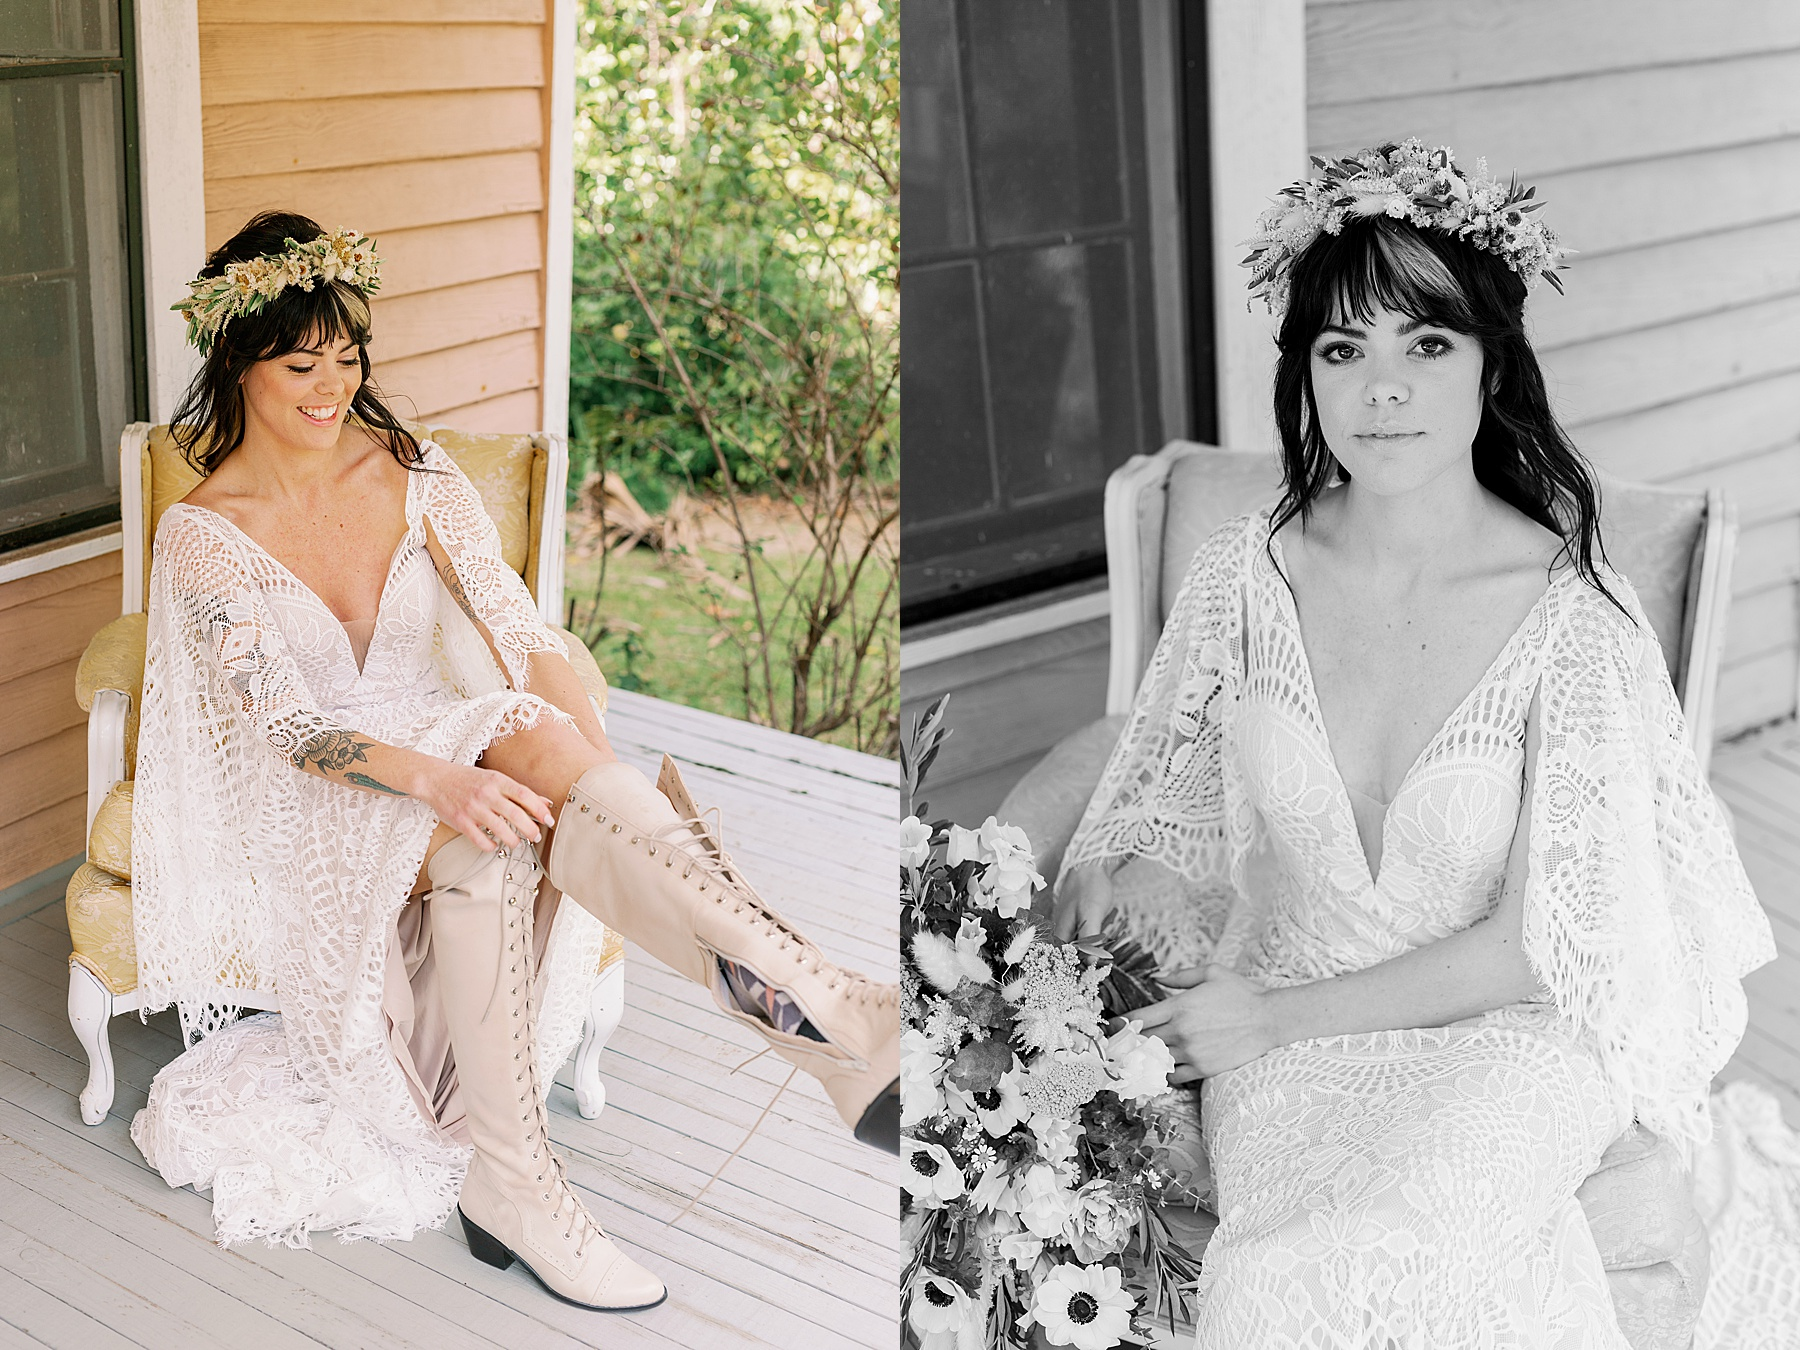 Bride in lace dress with flower crown putting on wedding boots